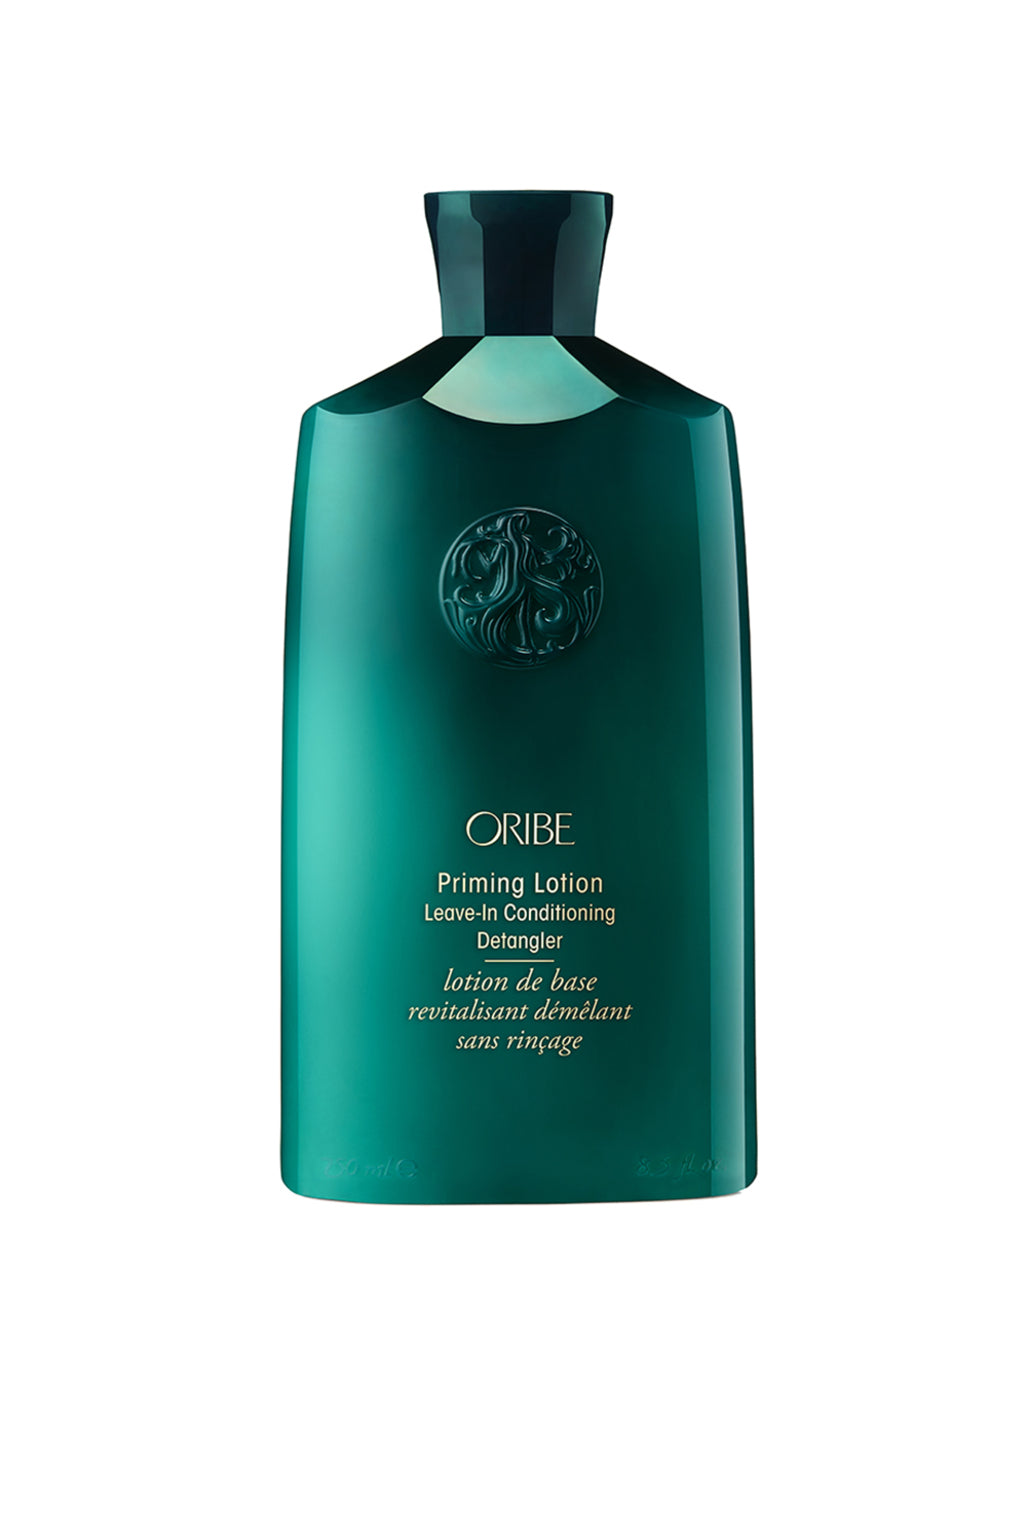 Priming Lotion, Leave-in Conditioning Detangler